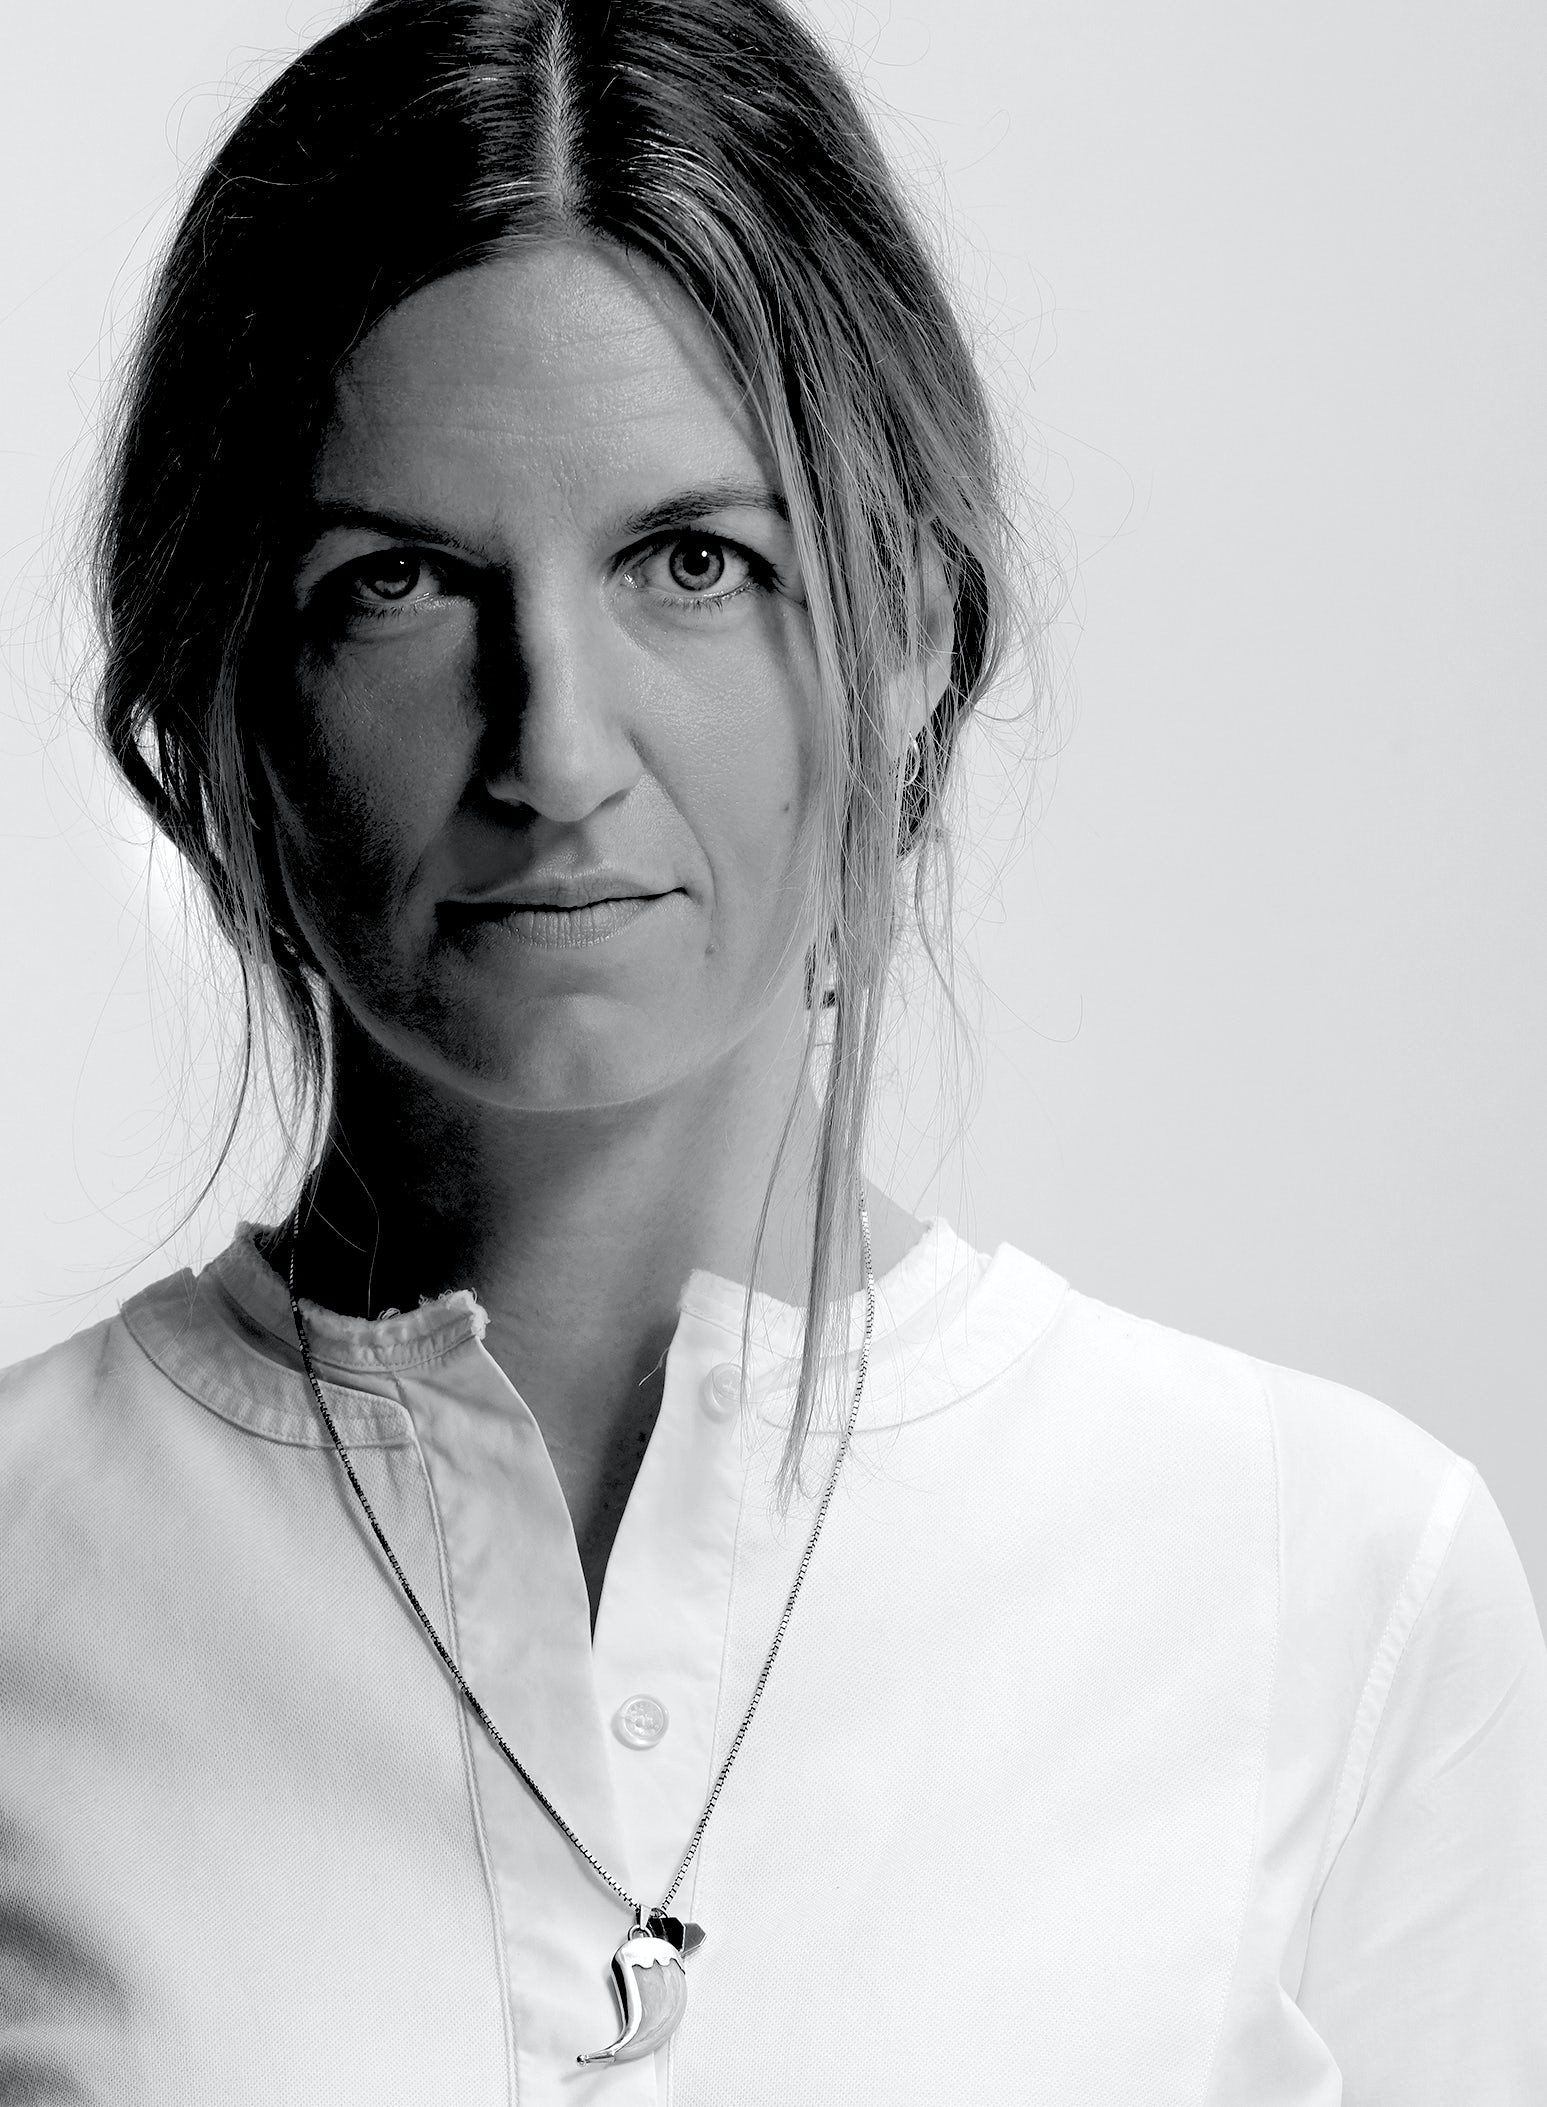 Power Moves | By Malene Birger's Creative Director, Macy's Hires President